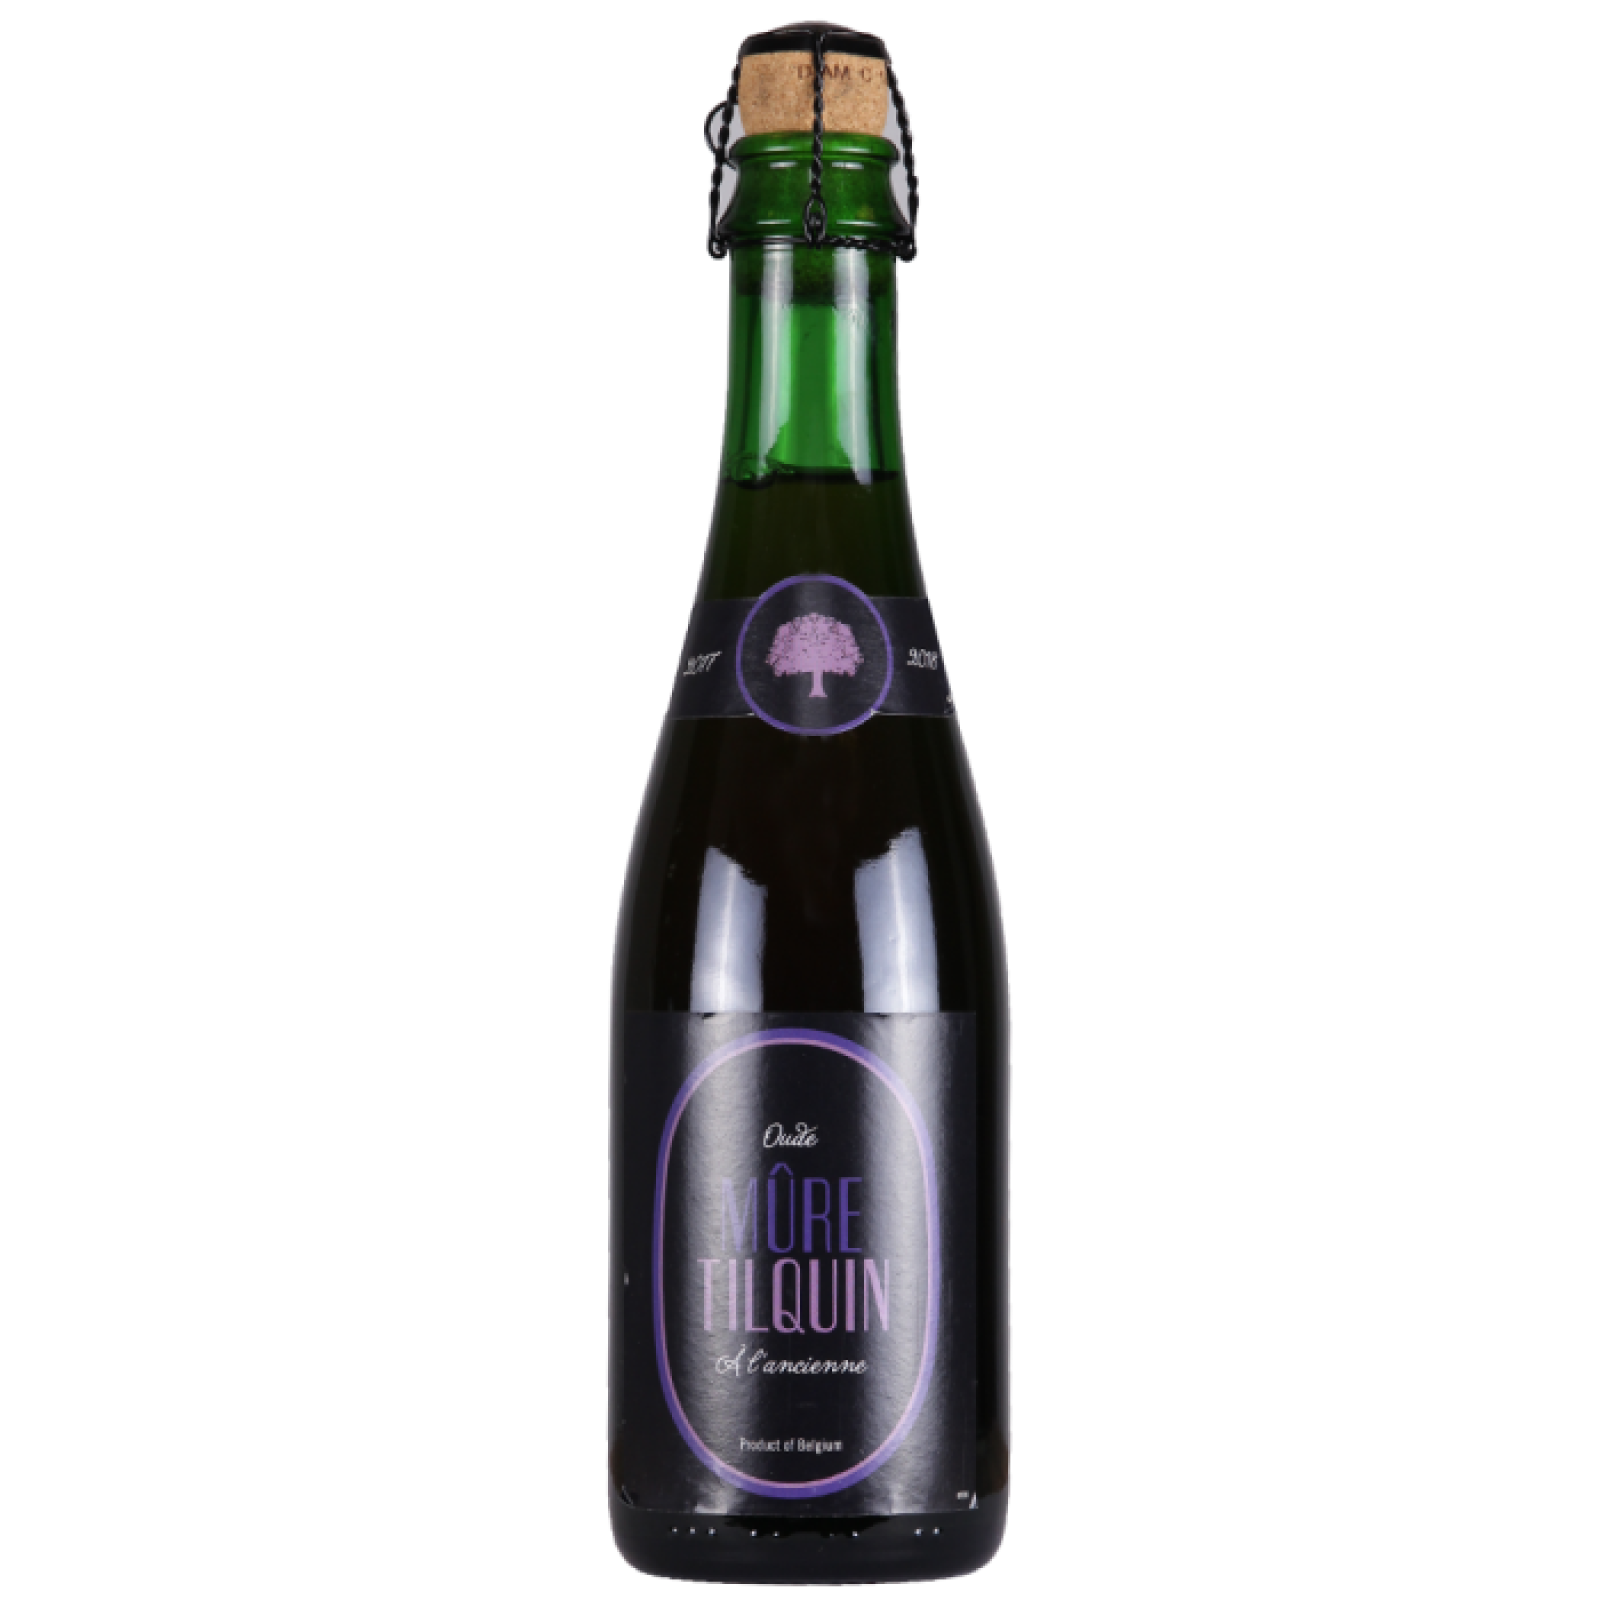 Mure A L'Ancienne - Lambic with Blackberries 6.4% 375ml Tilquin Brewing